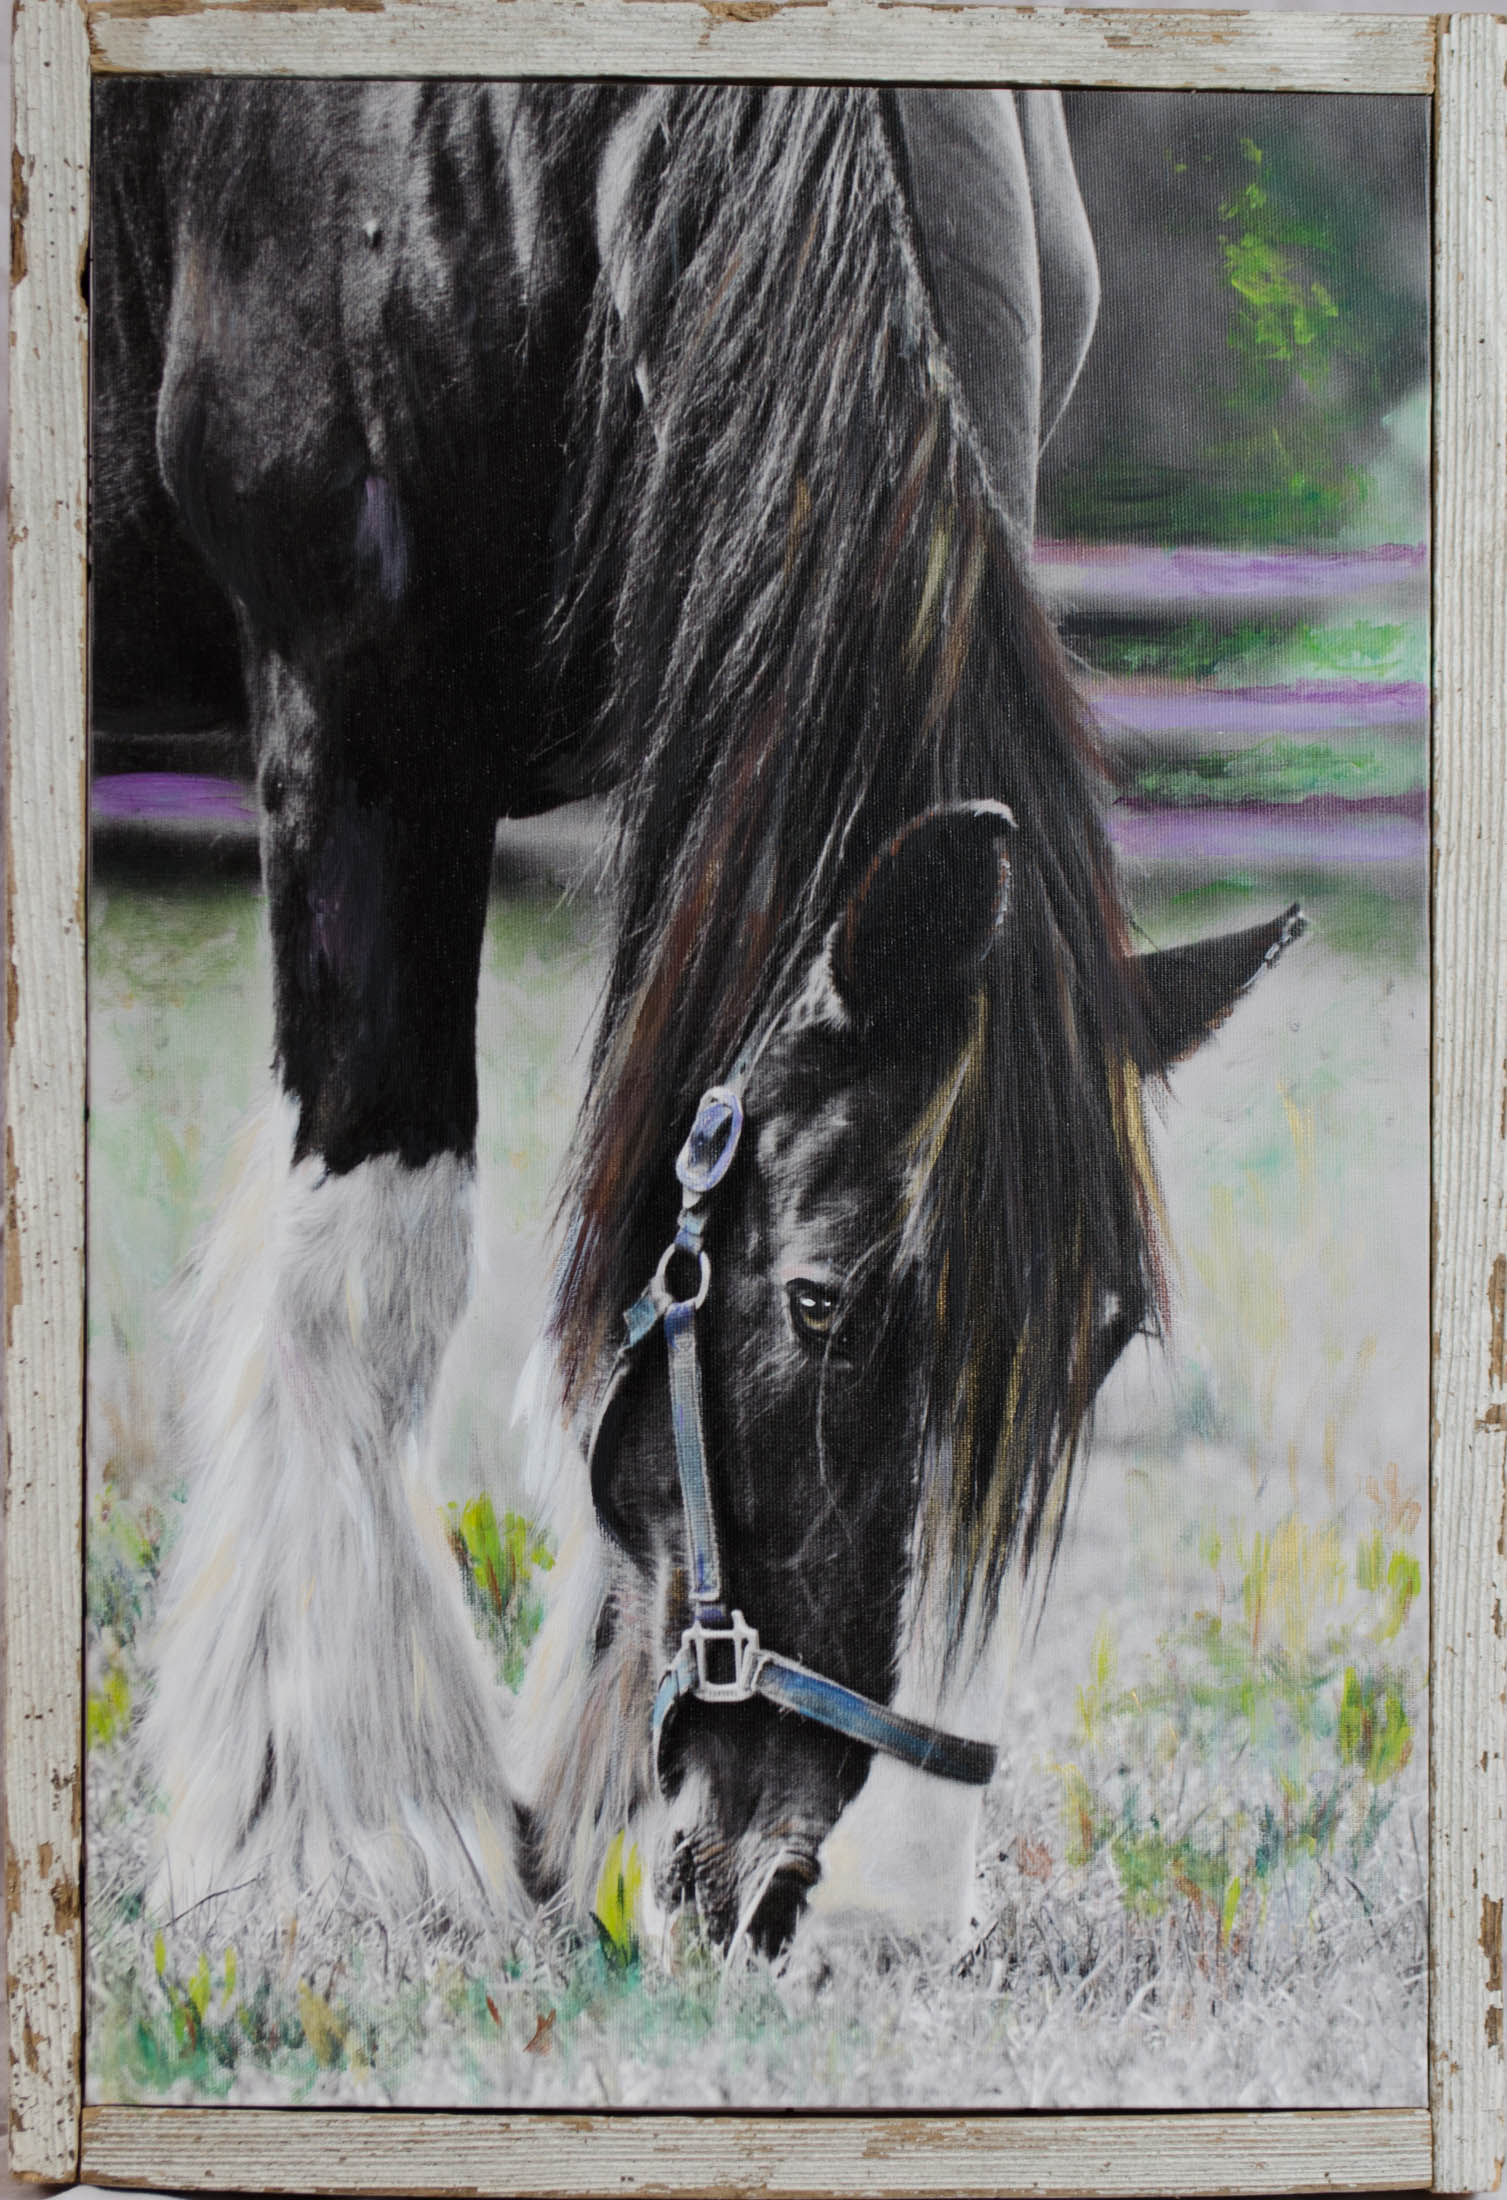 FINE ART PHOTOGRAPHY-MIXED MEDIA - Explore Picture the Market's fine-art collection of original photographs by artist Barri Riley, who then embellished her images with acrylic paint to bring her artwork to life.Great as gifts for new homeowners and buyers, or family and friends.